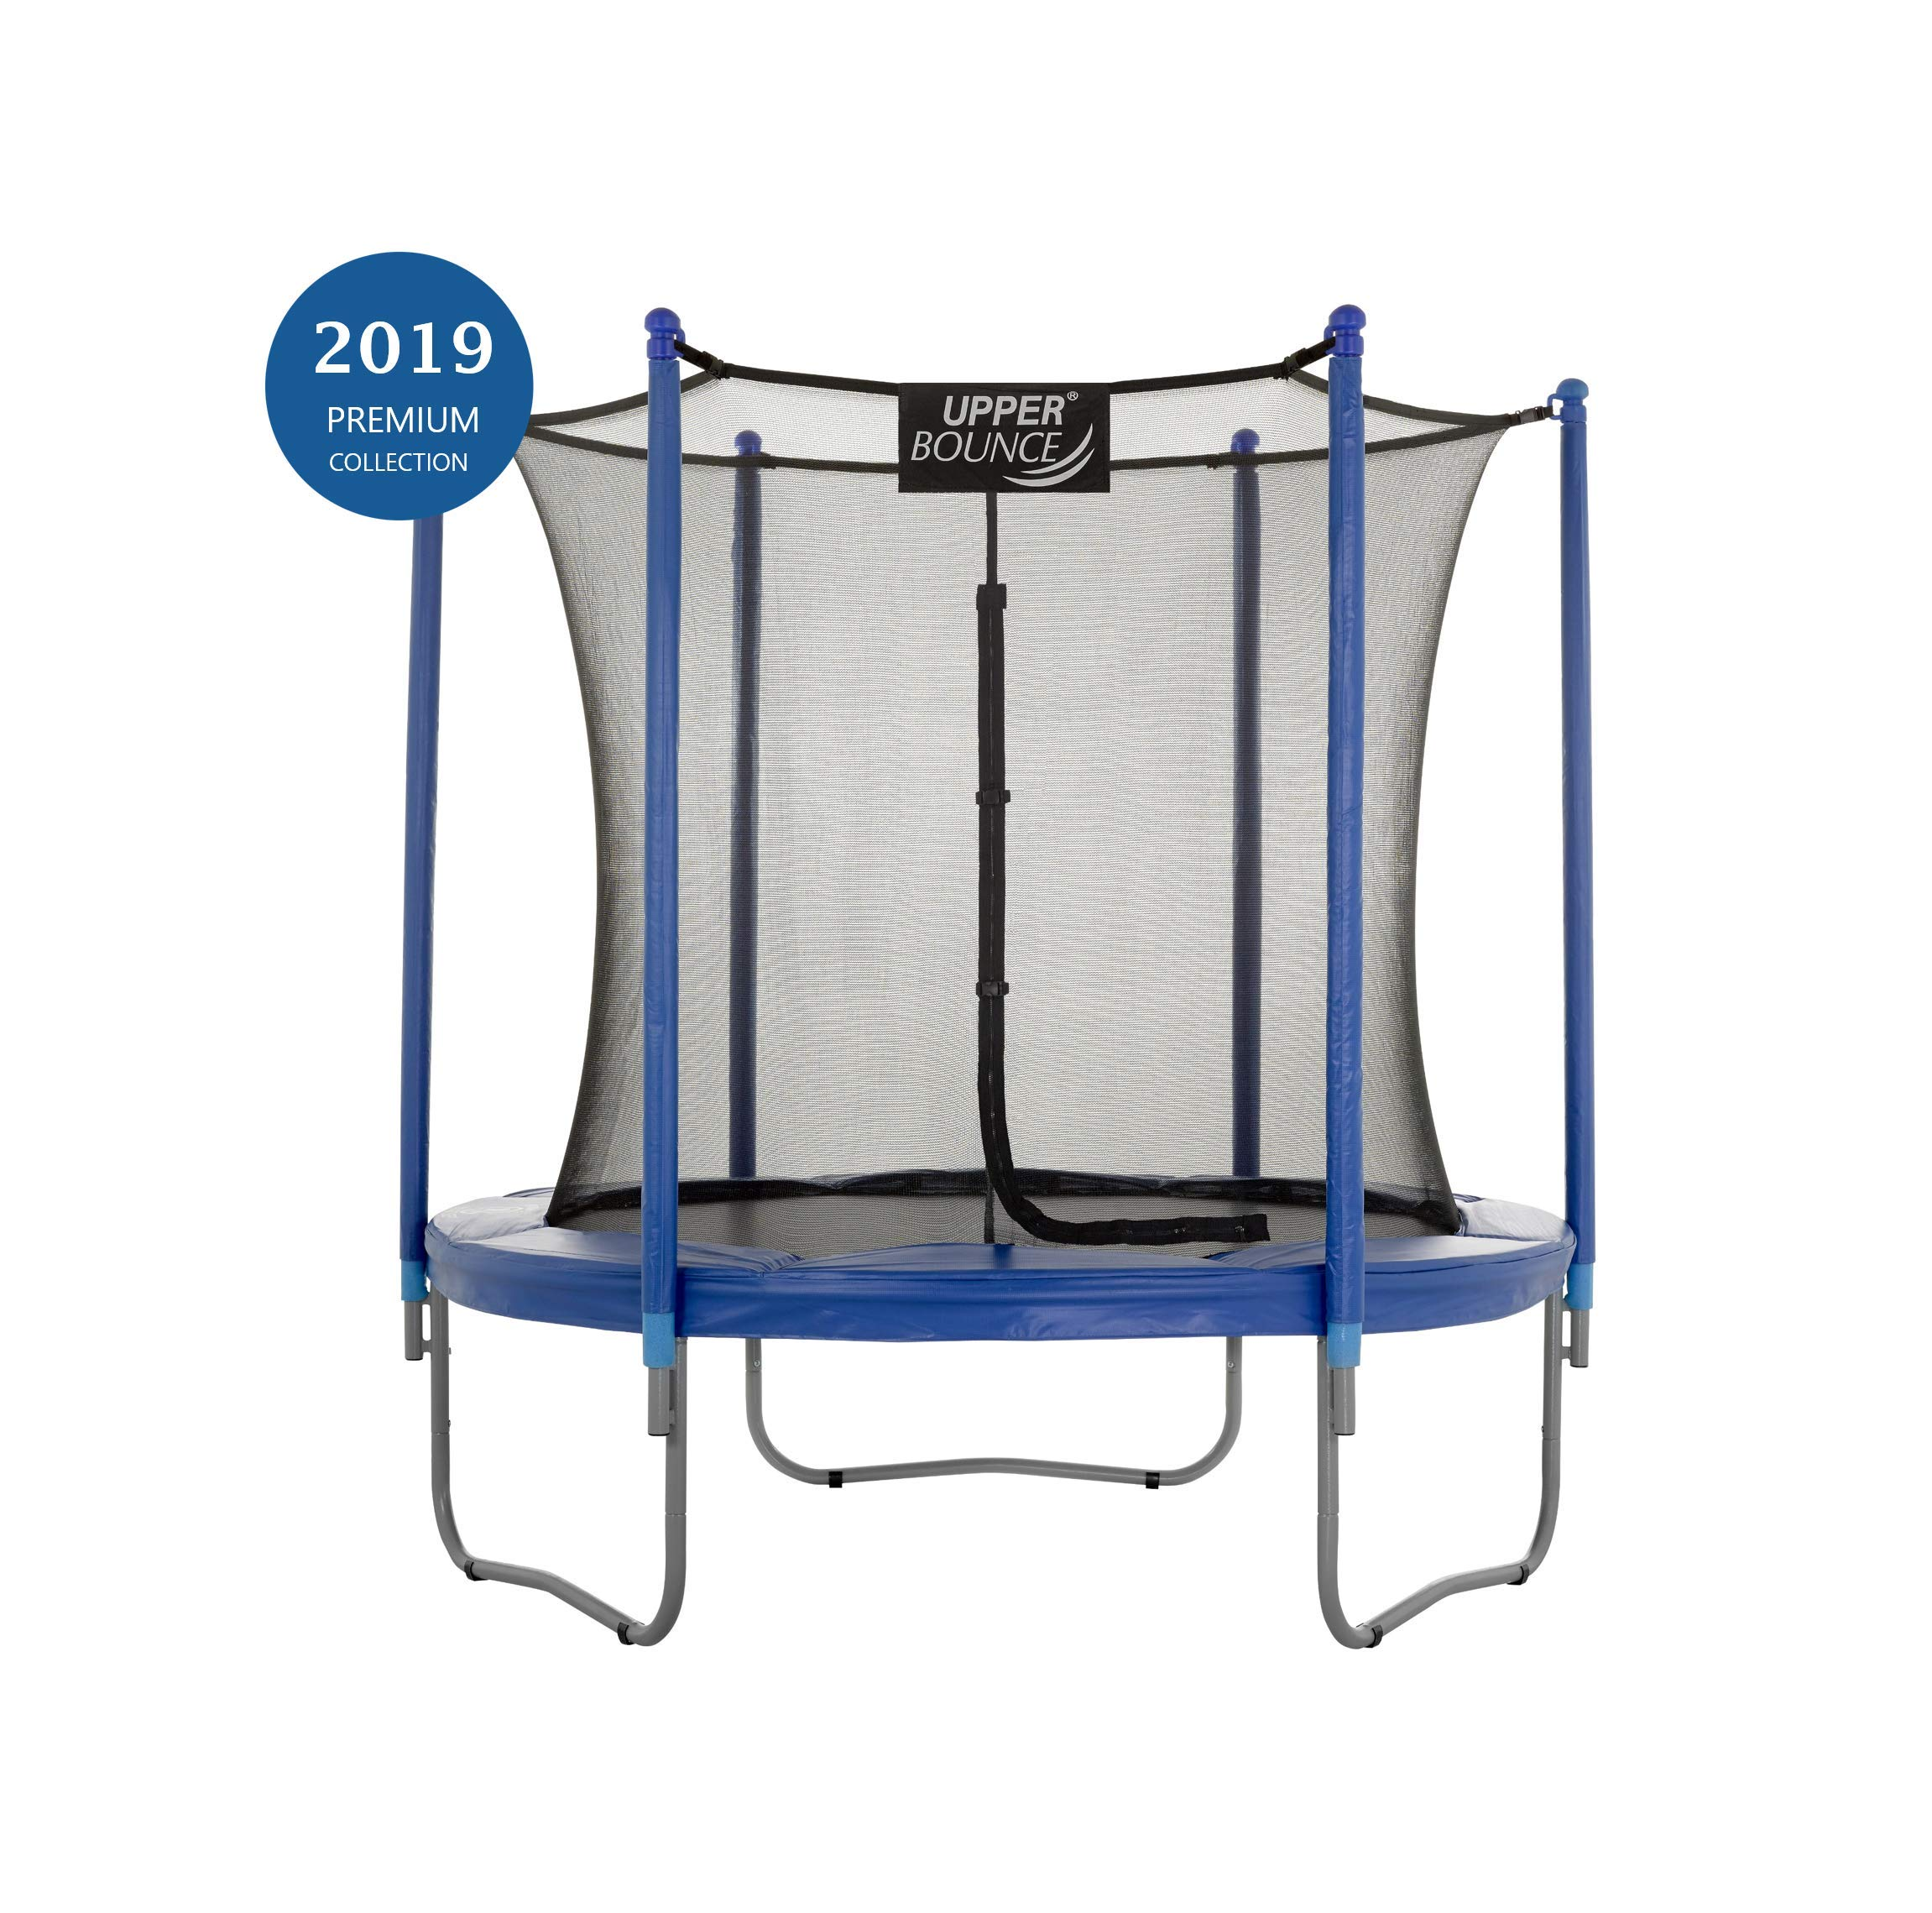 Upper Bounce 7.5 FT. Trampoline & Enclosure Set equipped with the New ''EASY ASSEMBLE FEATURE'' by Upper Bounce